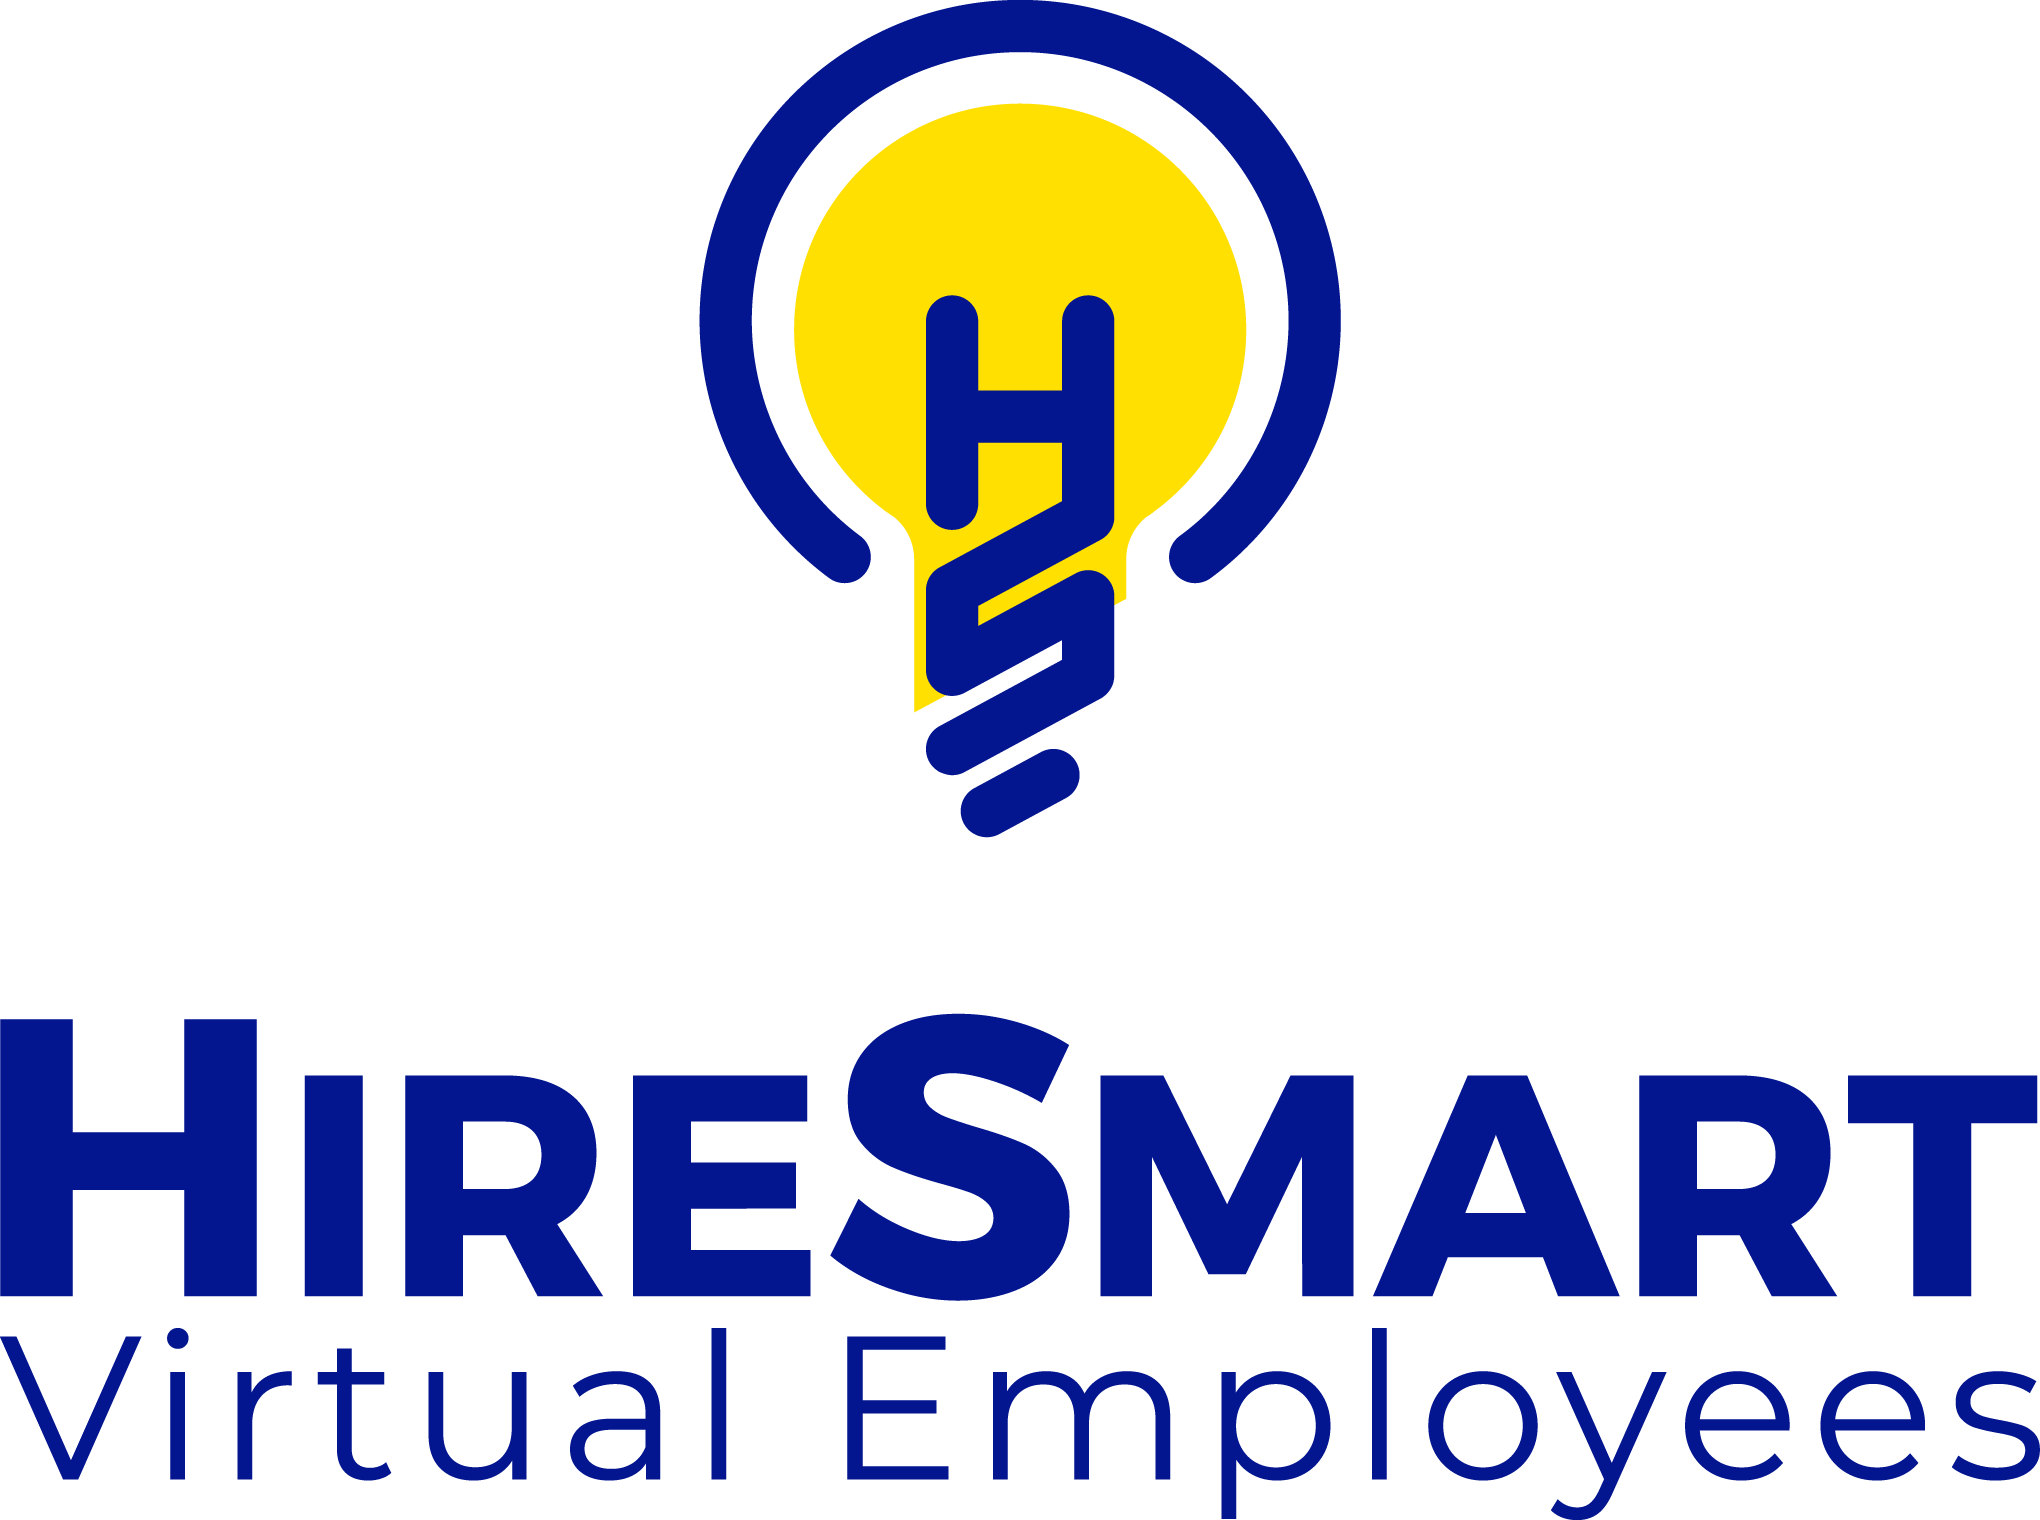 HireSmart virtual Employees